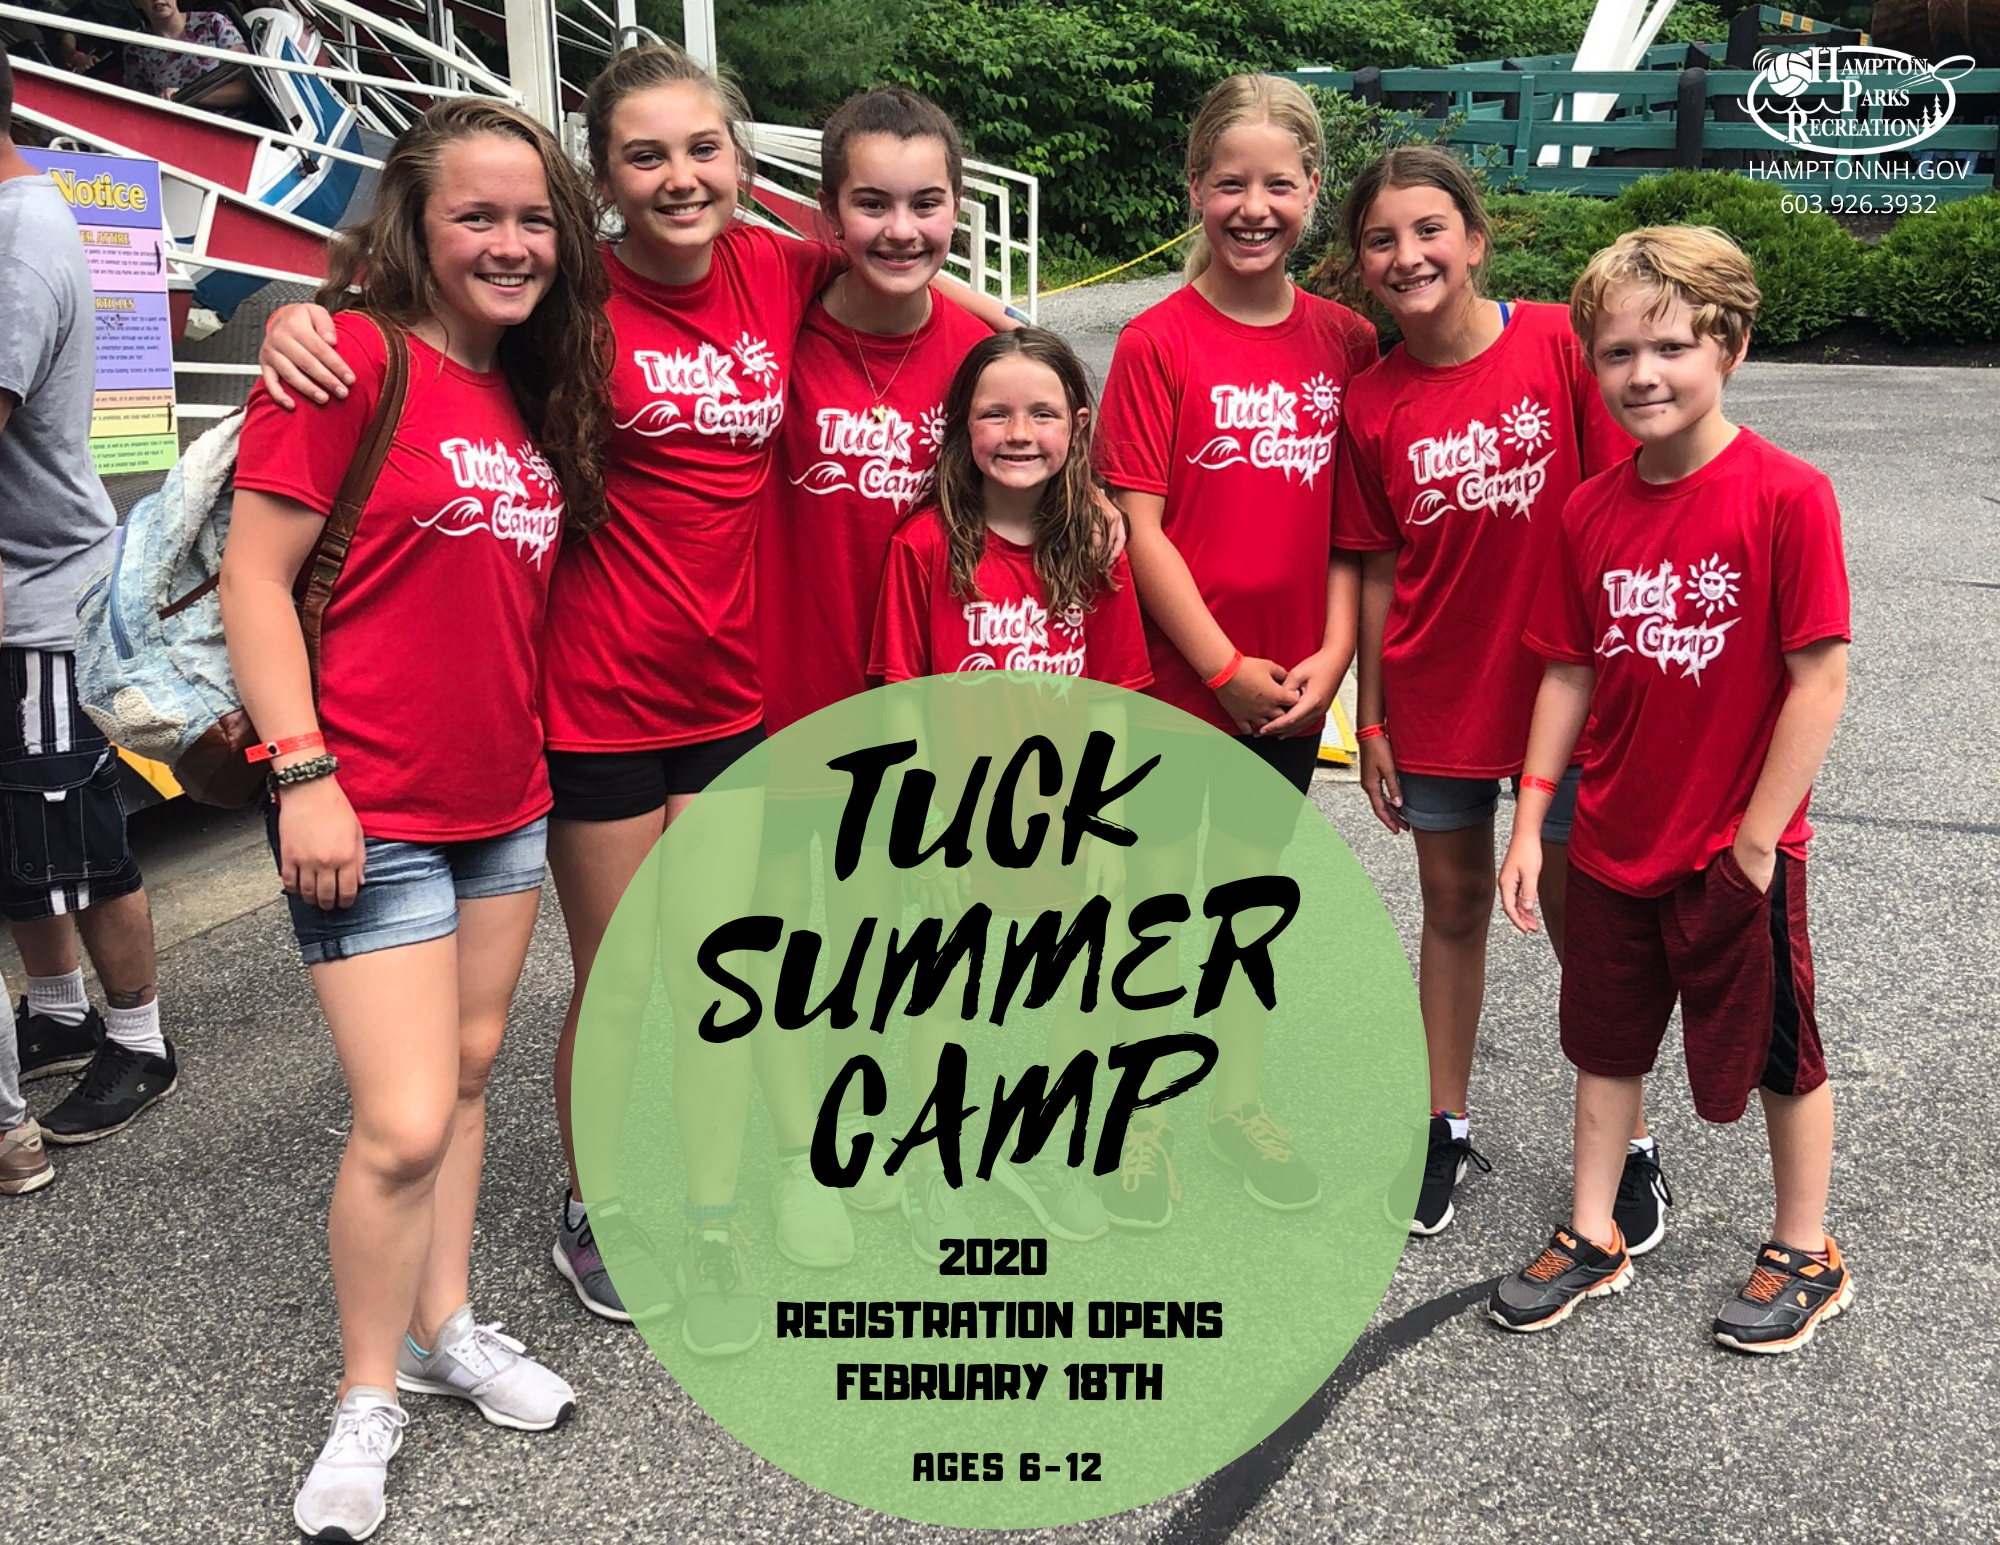 TUCK CAMP REGISTRATION